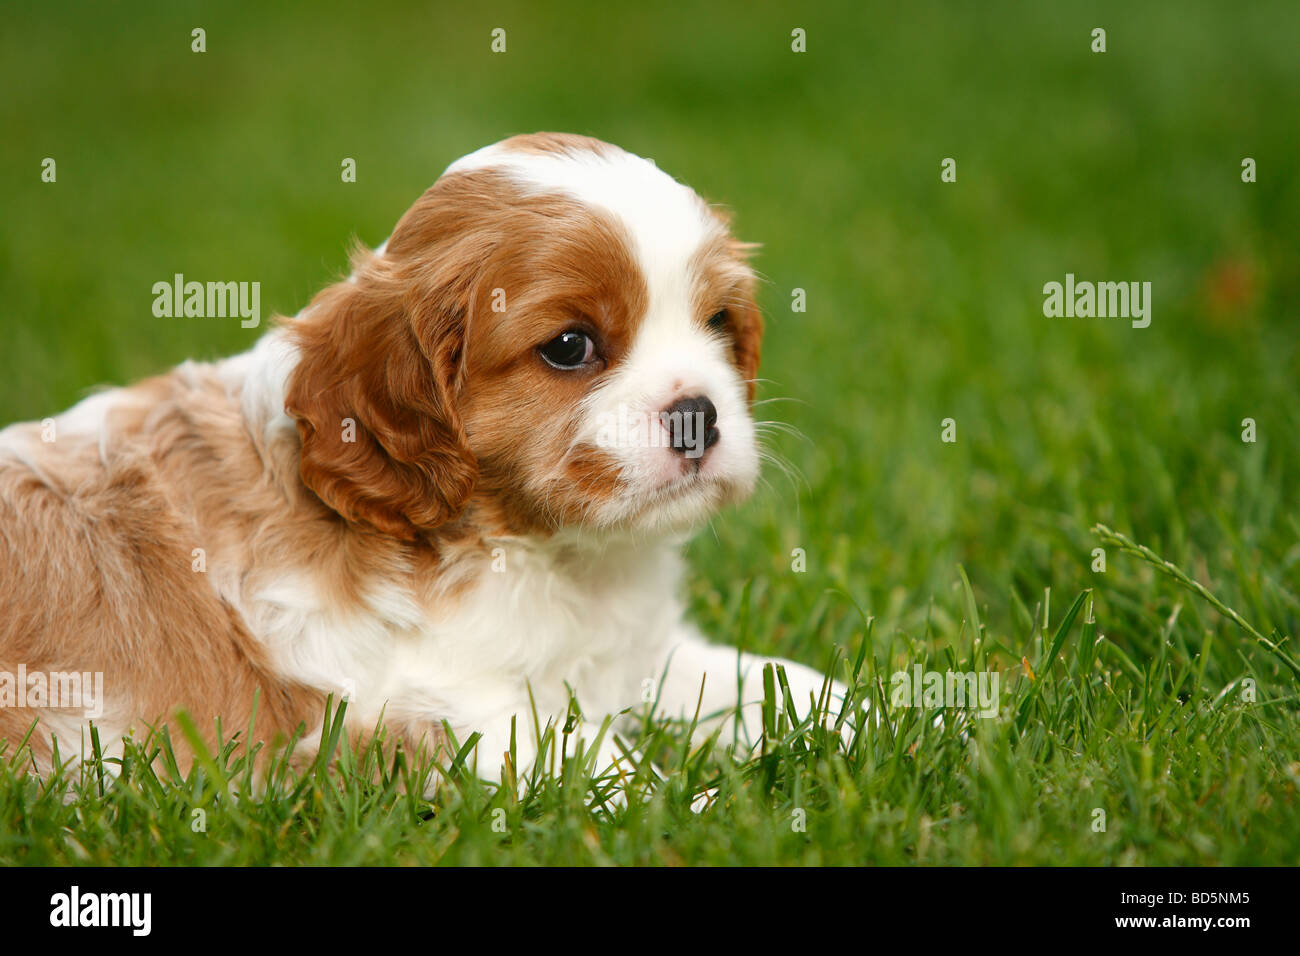 Cavalier King Charles Spaniel Puppy Blenheim 5 Weeks Stock Photo Alamy